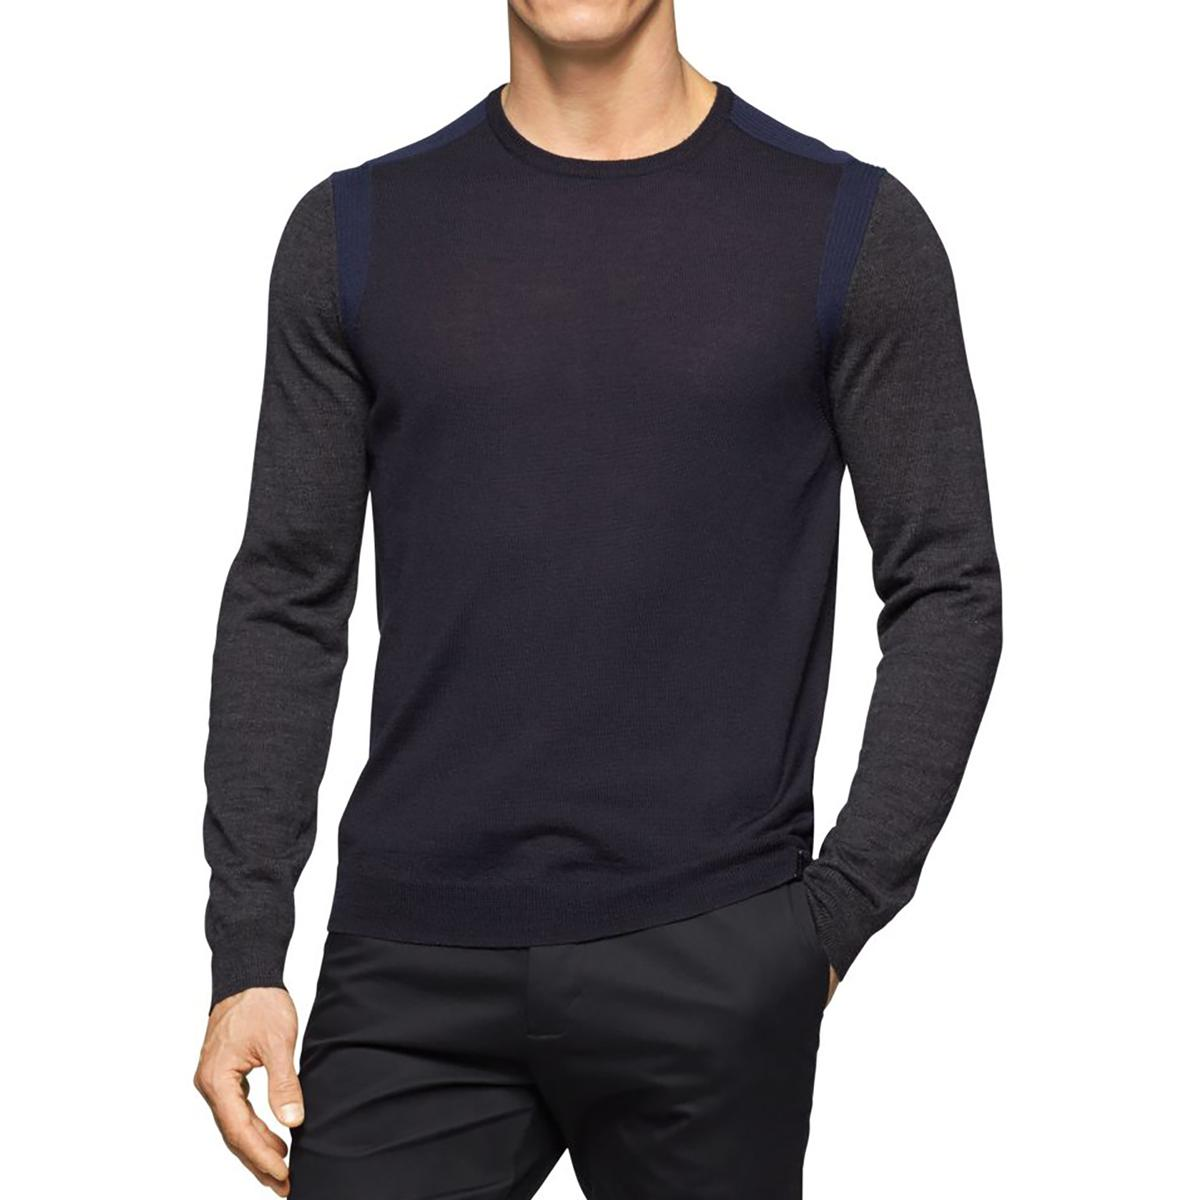 calvin klein 2123 mens merino wool blend knit colorblock pullover sweater bhfo ebay. Black Bedroom Furniture Sets. Home Design Ideas